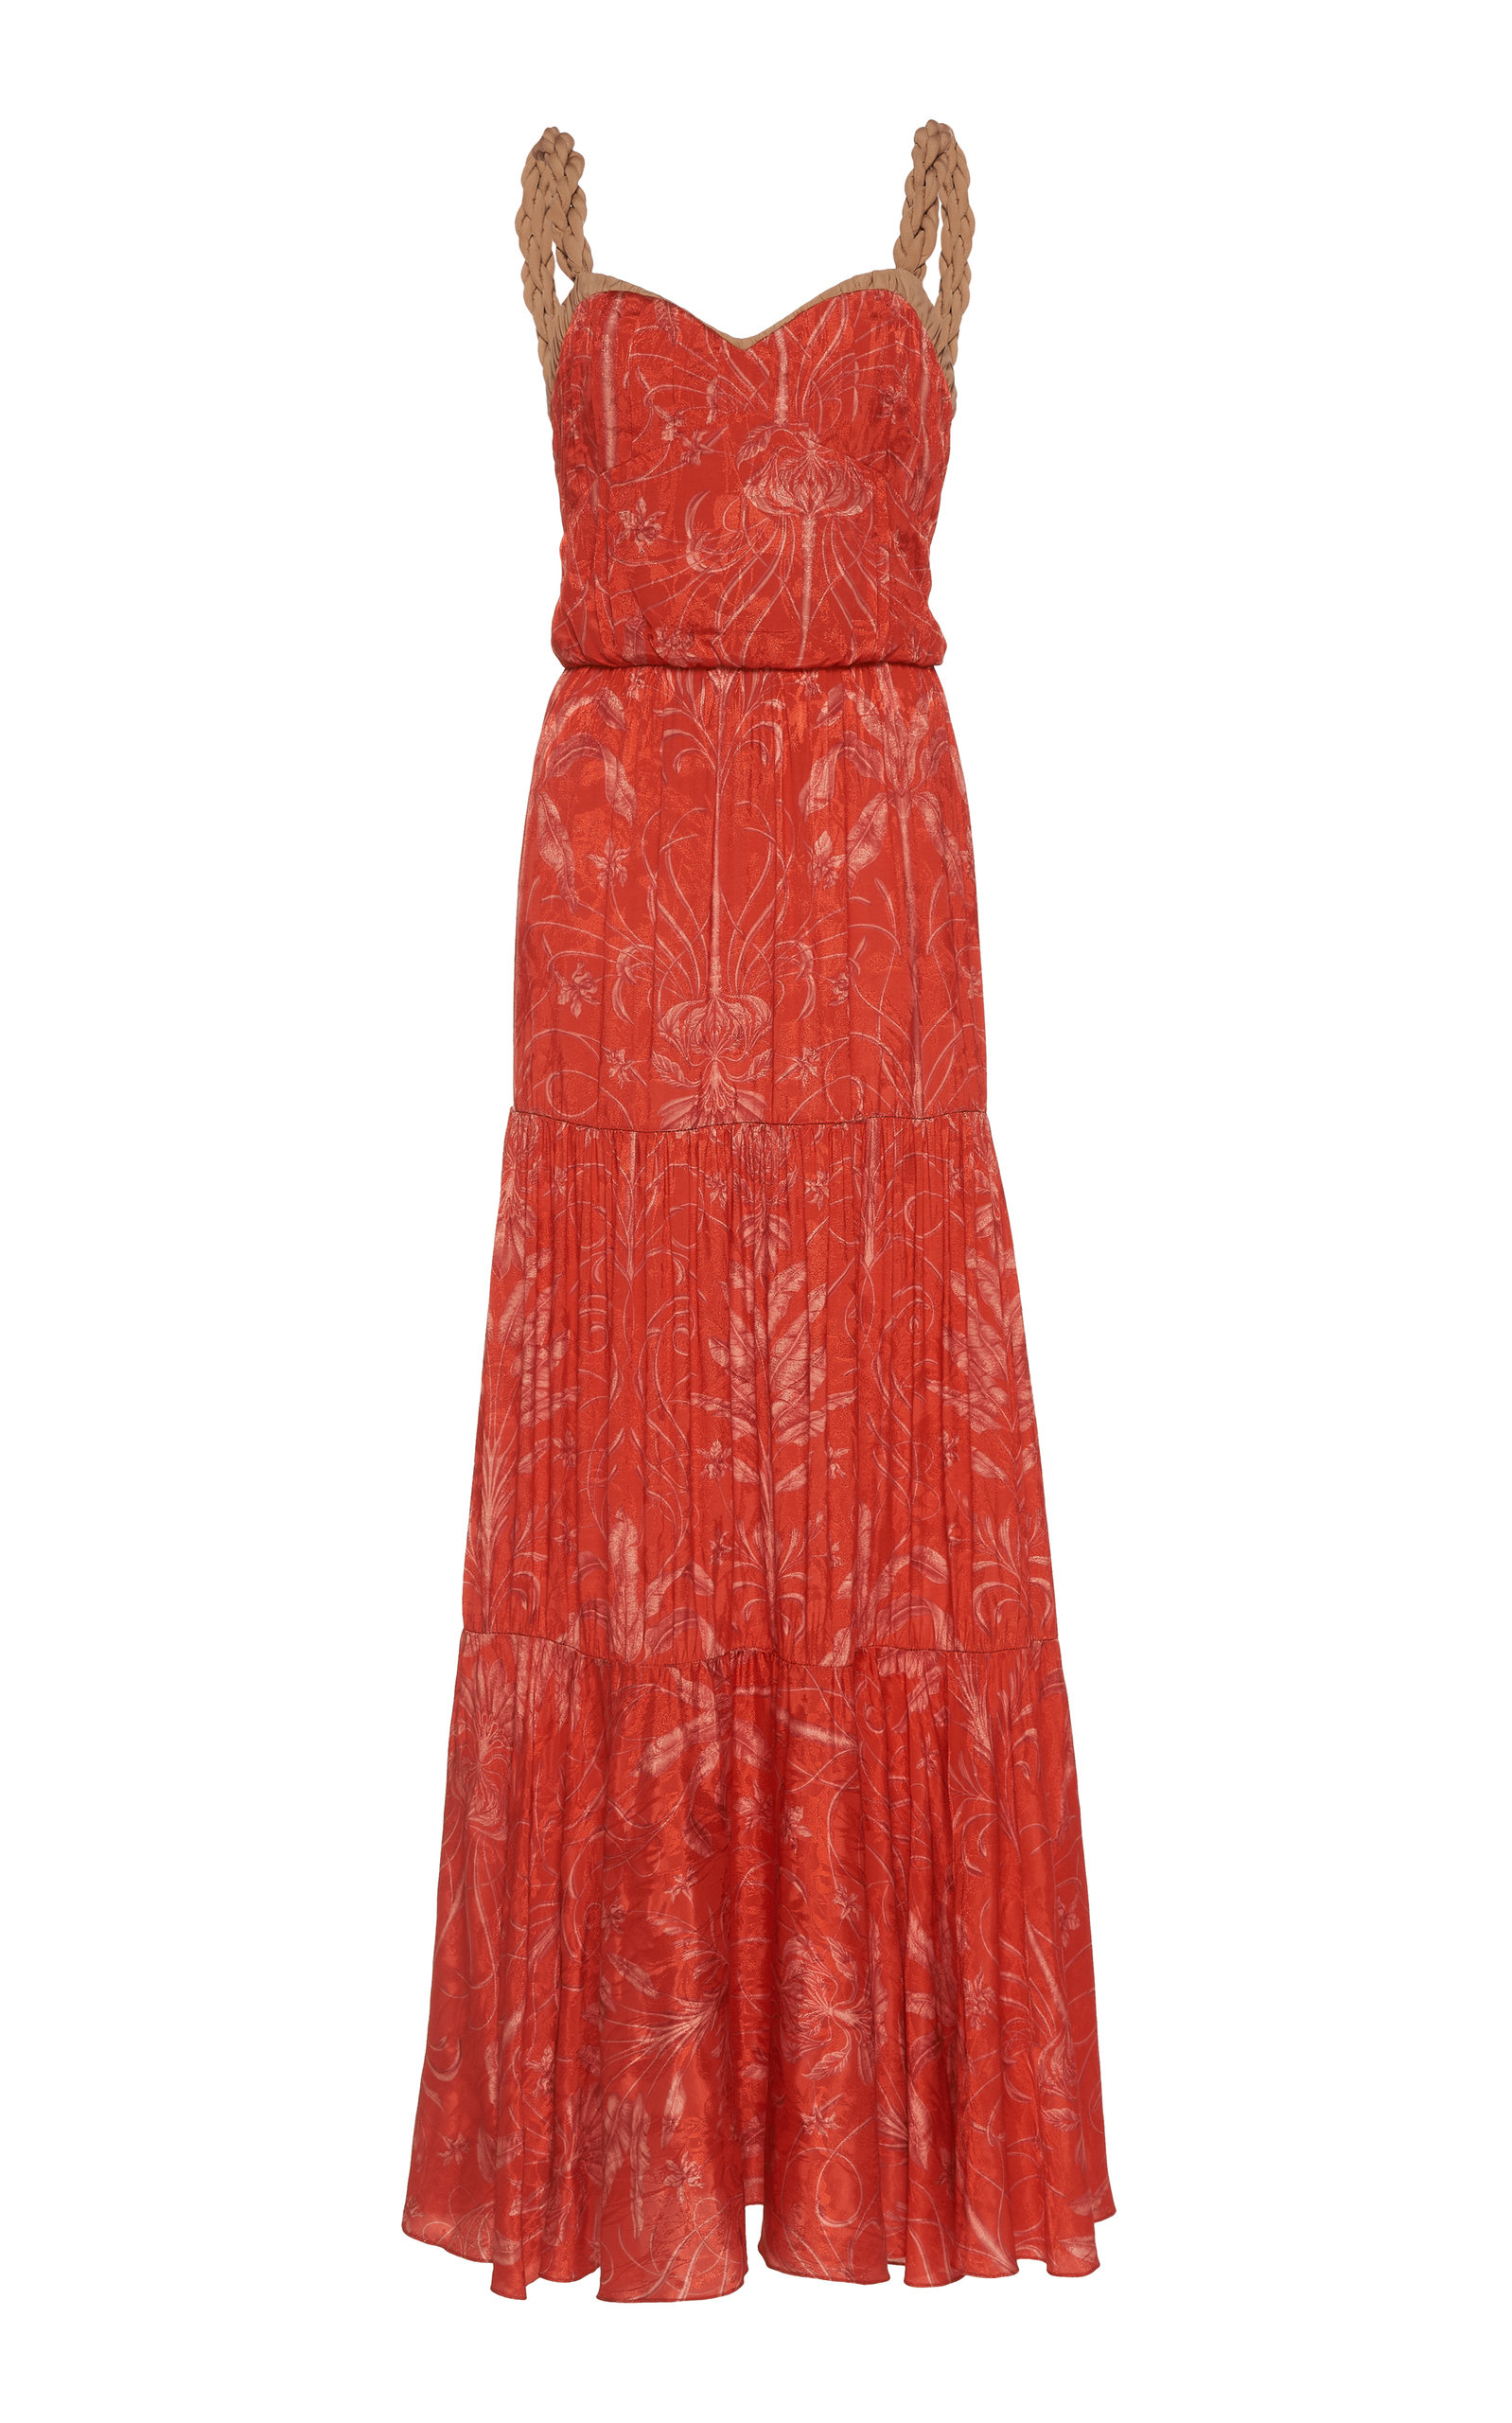 Buy Johanna Ortiz Uncertainty Principles Printed Jacquard Maxi Dress online, shop Johanna Ortiz at the best price